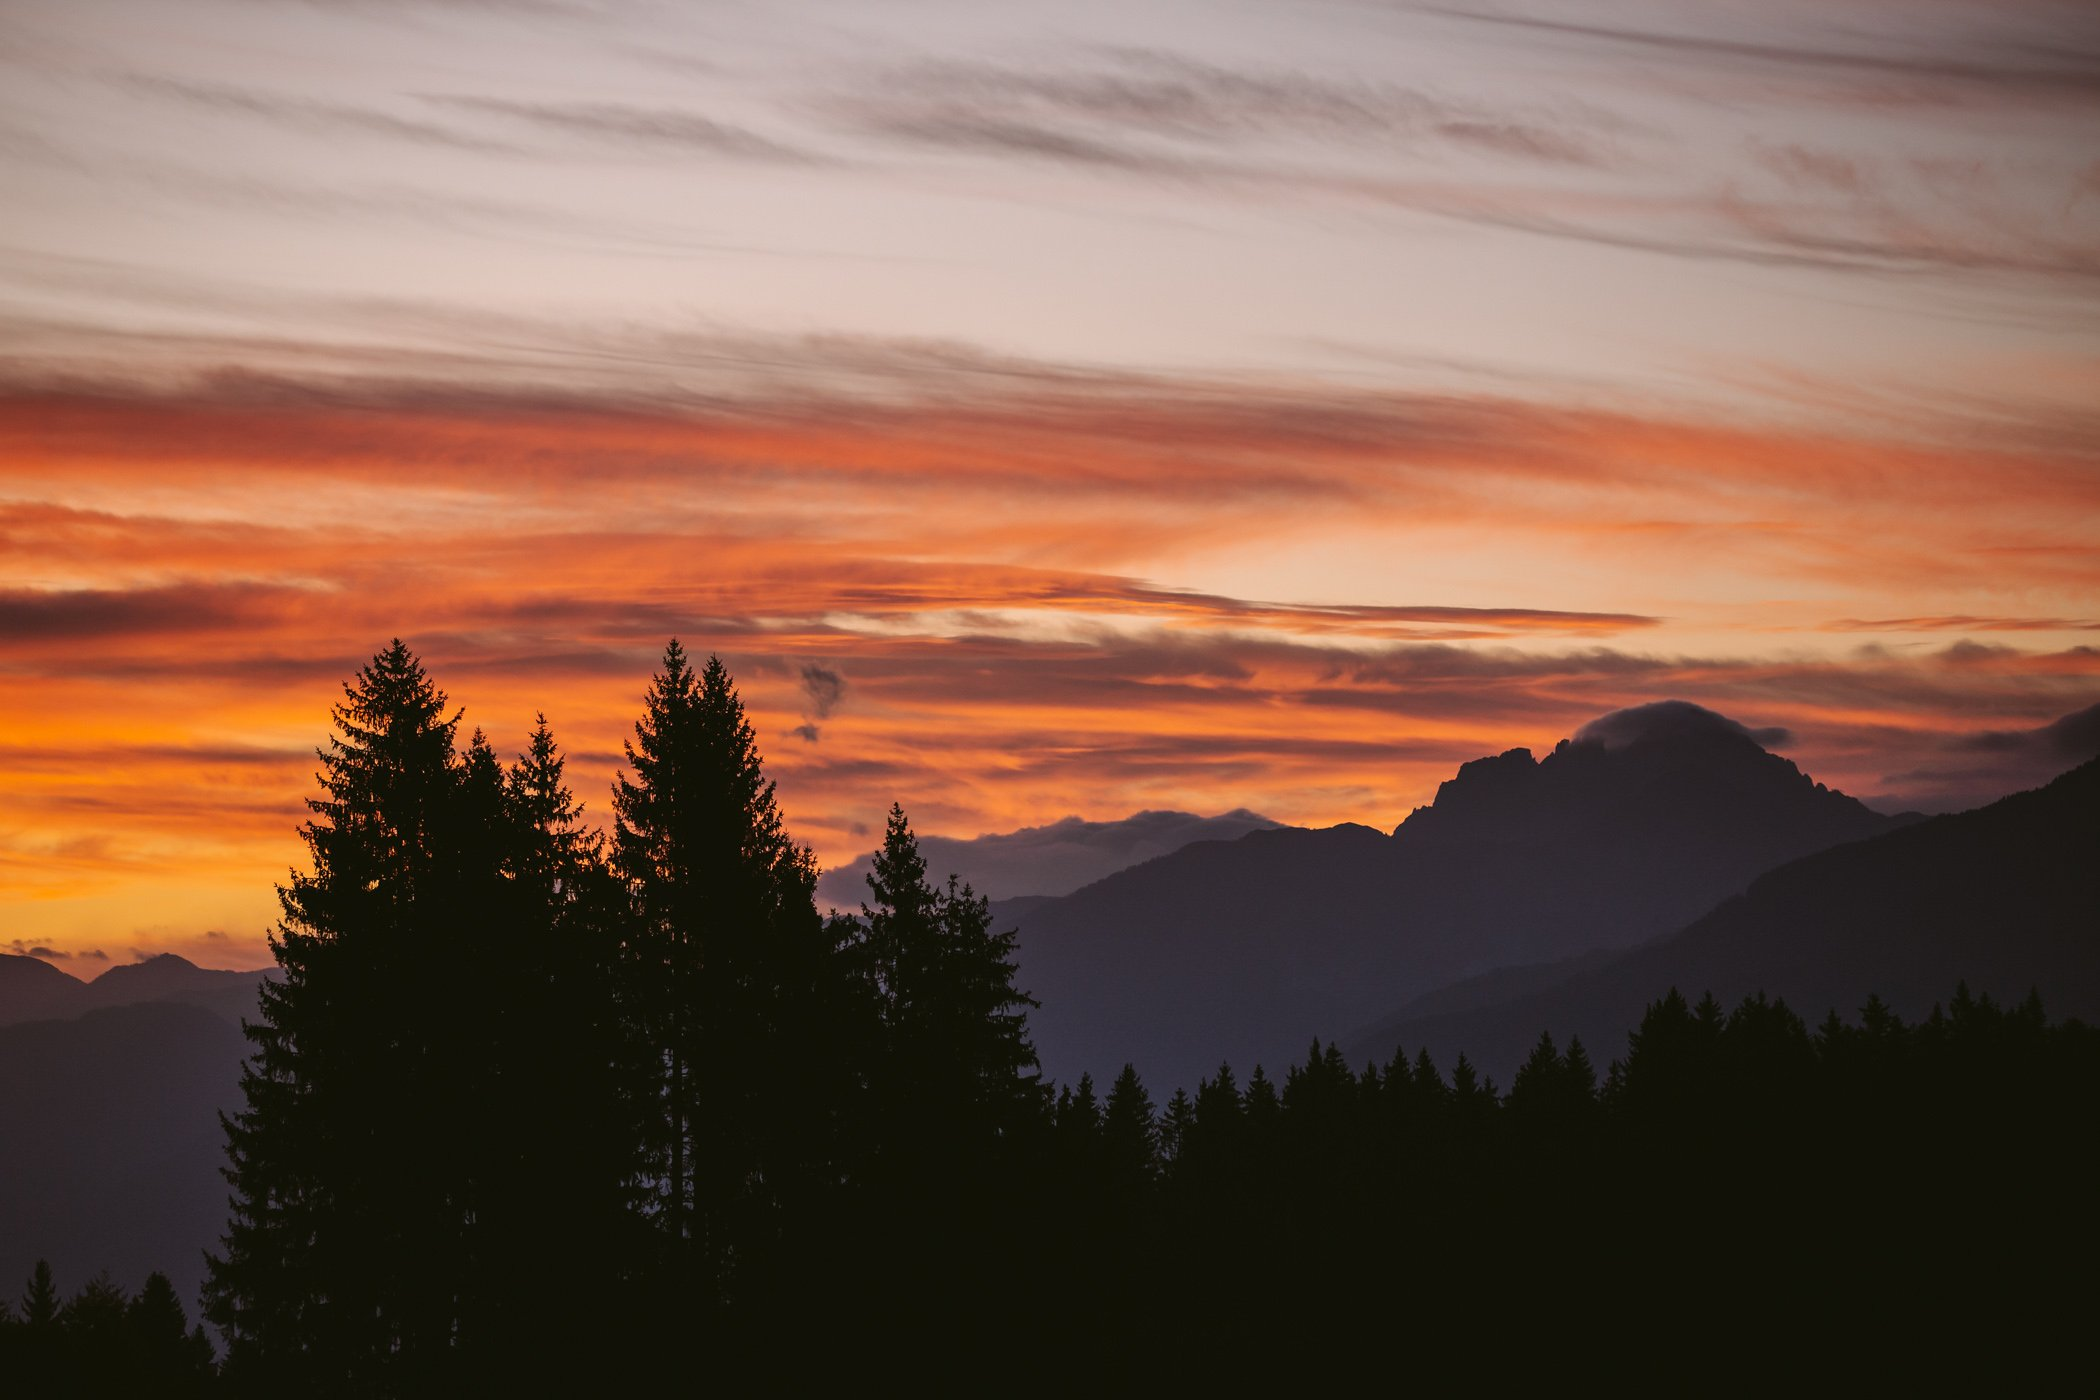 Sunset over Carinthia